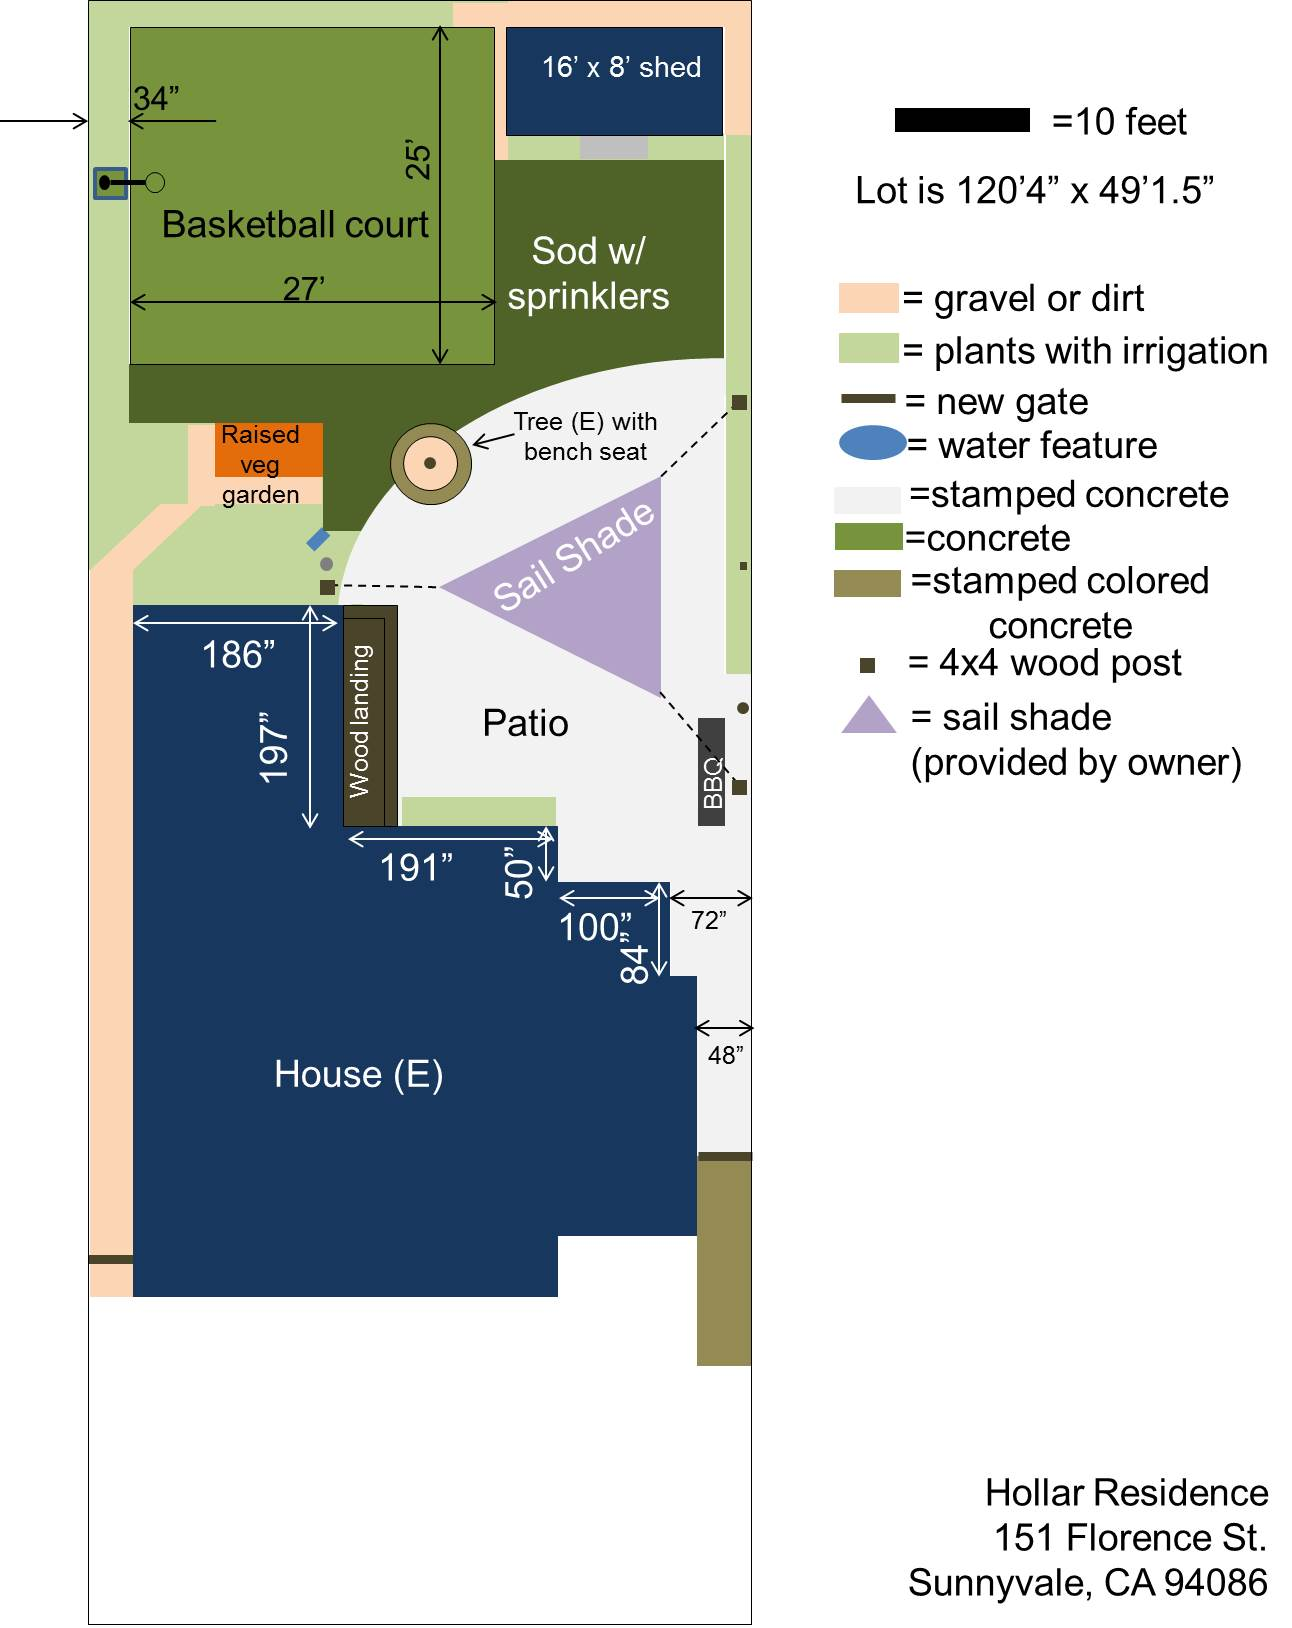 california court system diagram uverse nid wiring eric 39s of his residence shows basketball